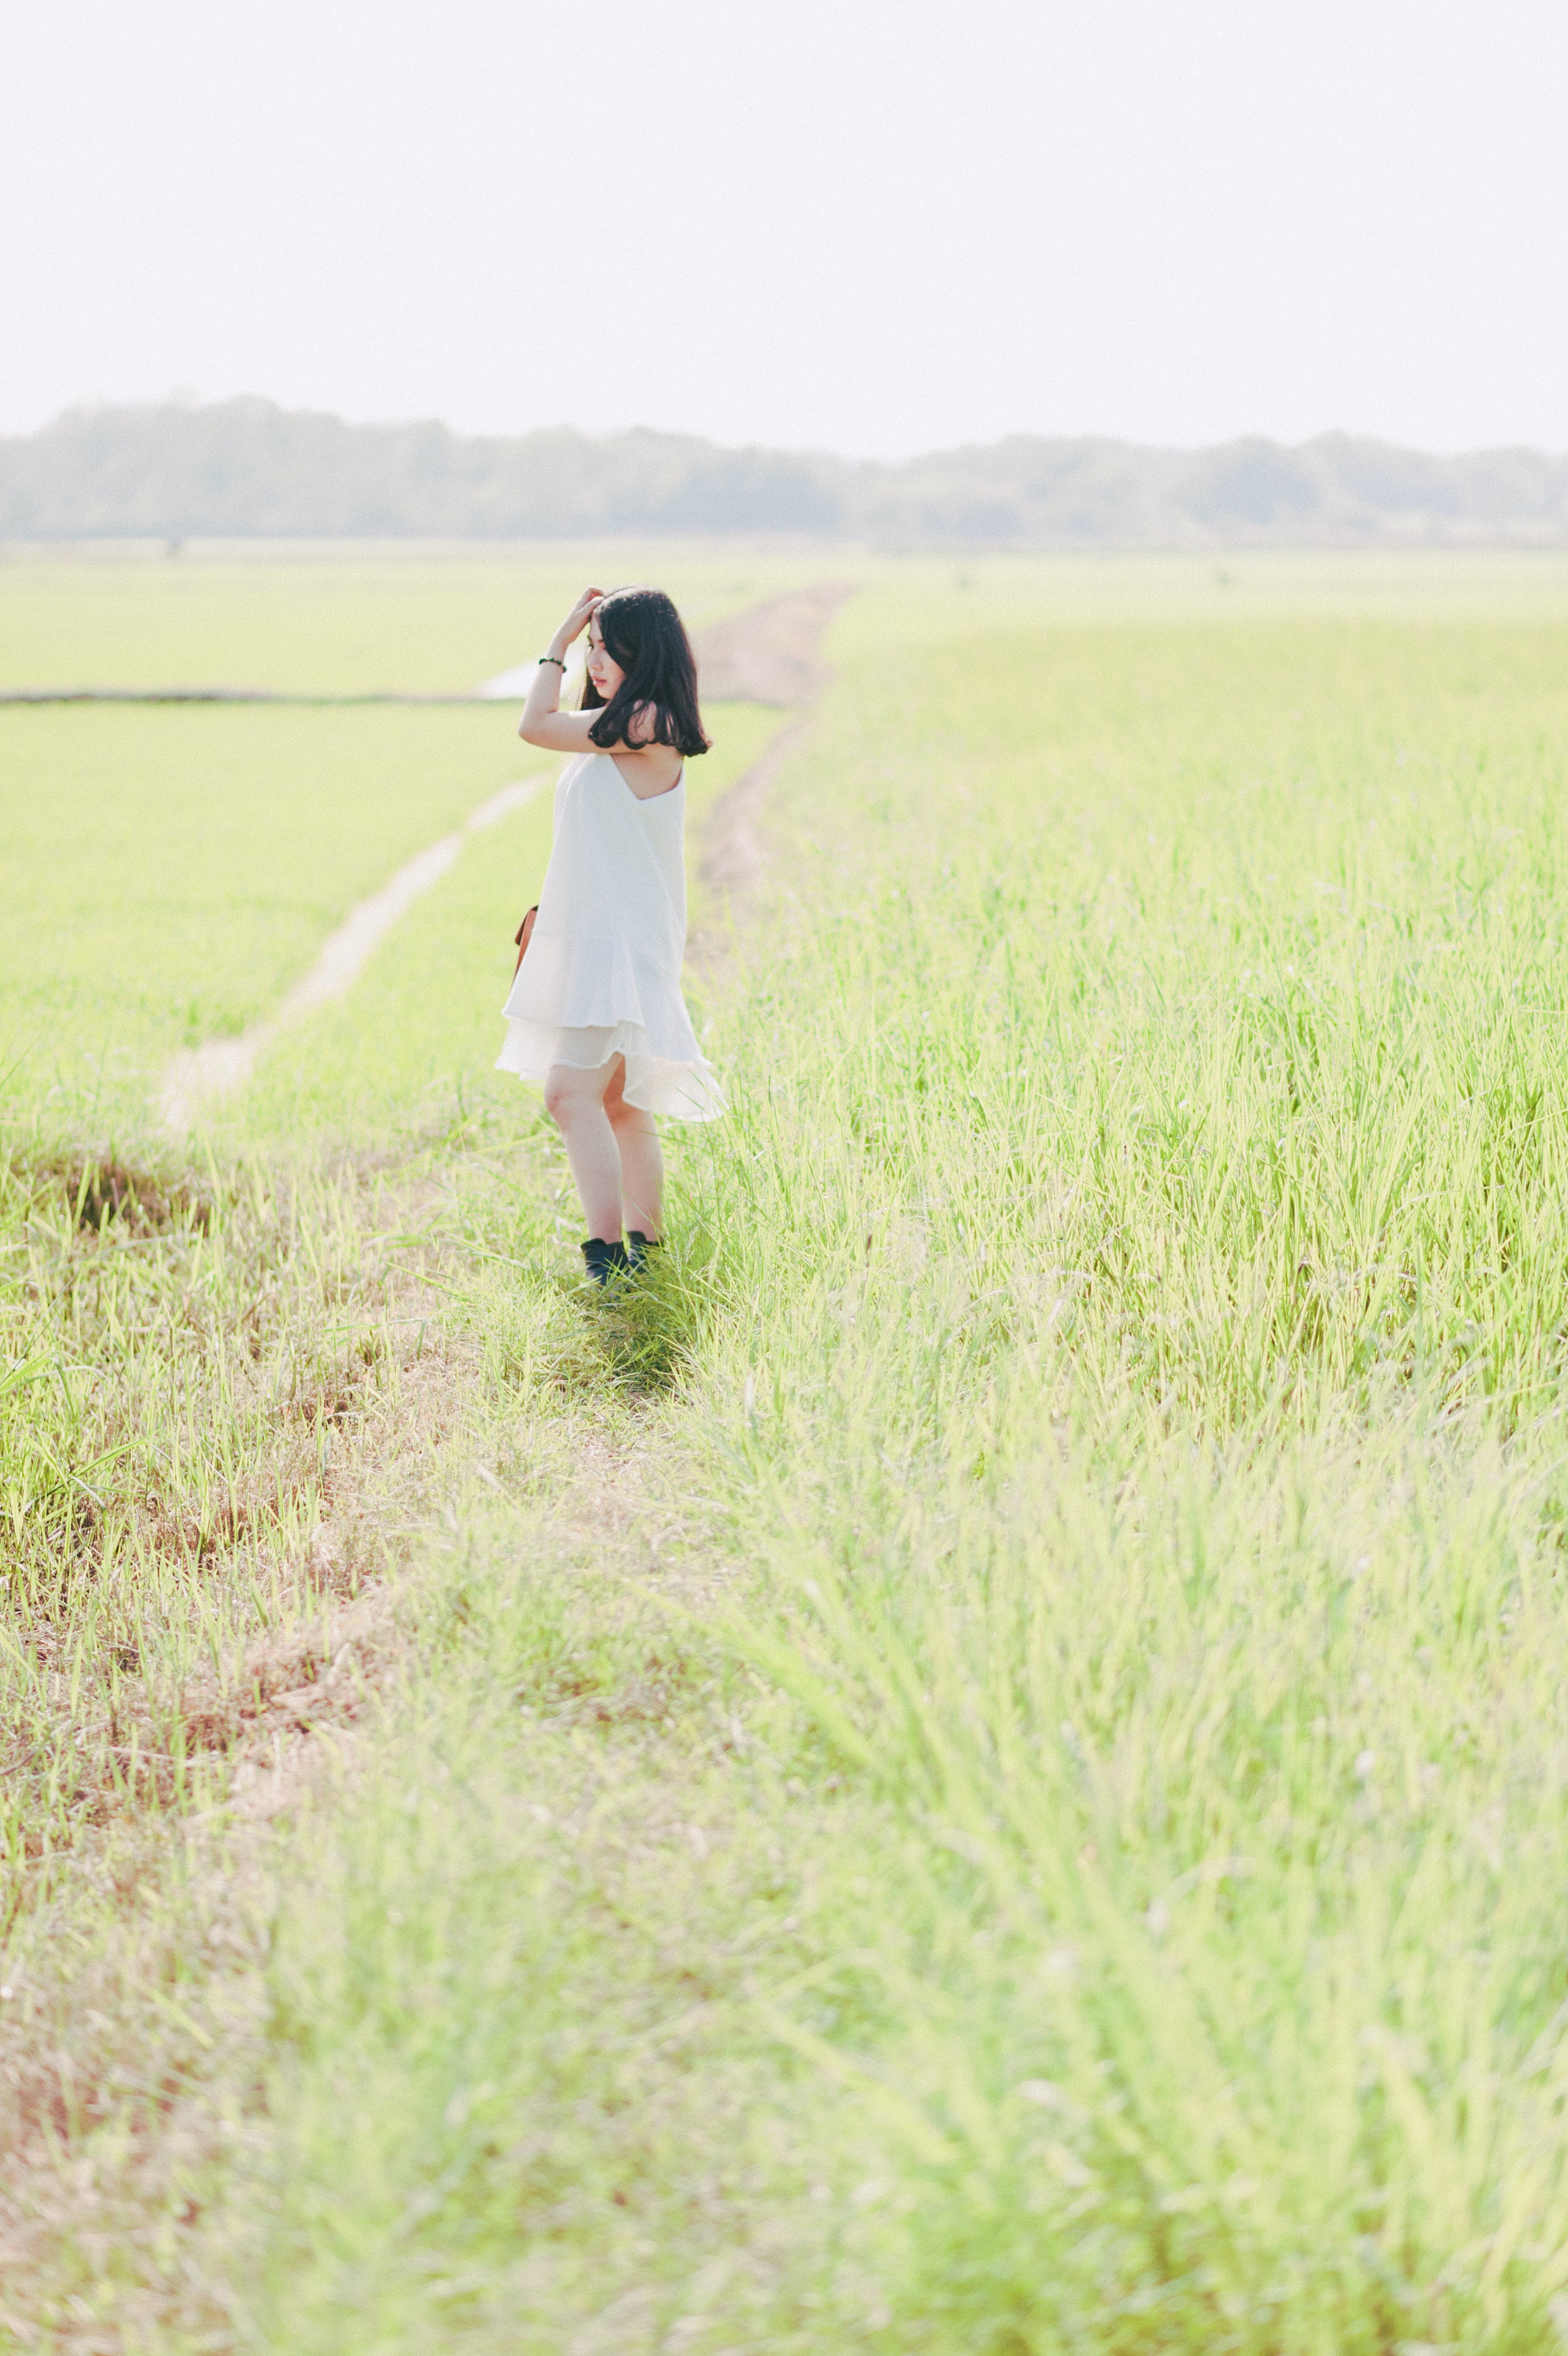 Woman Standing on Green Grass Field